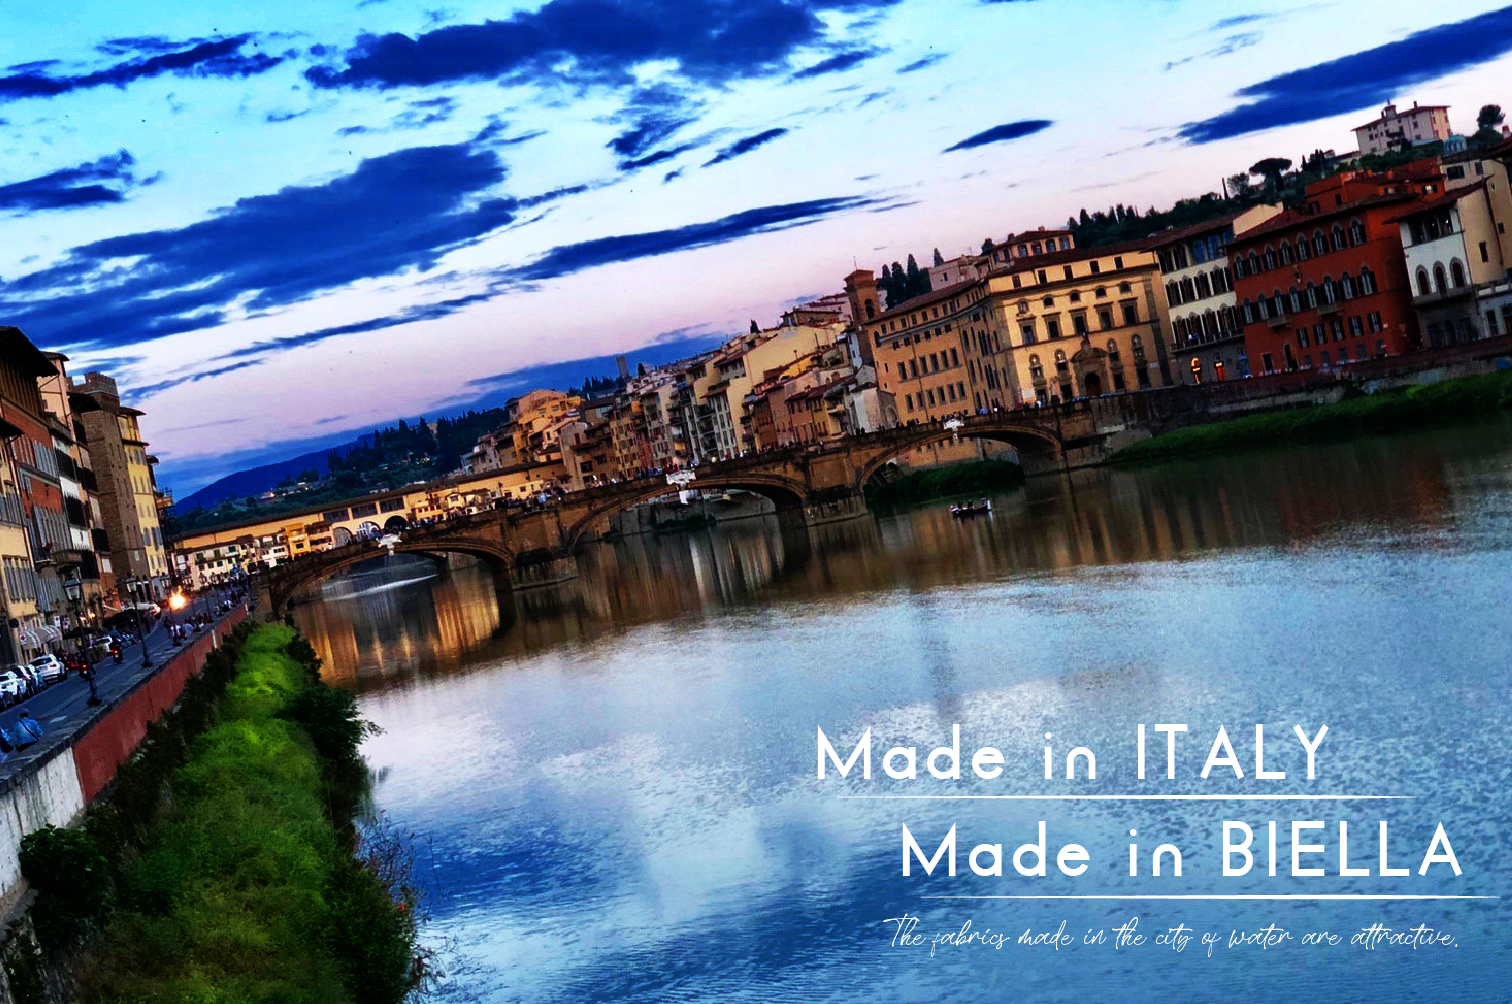 Made in ITALY Made in BIELLA